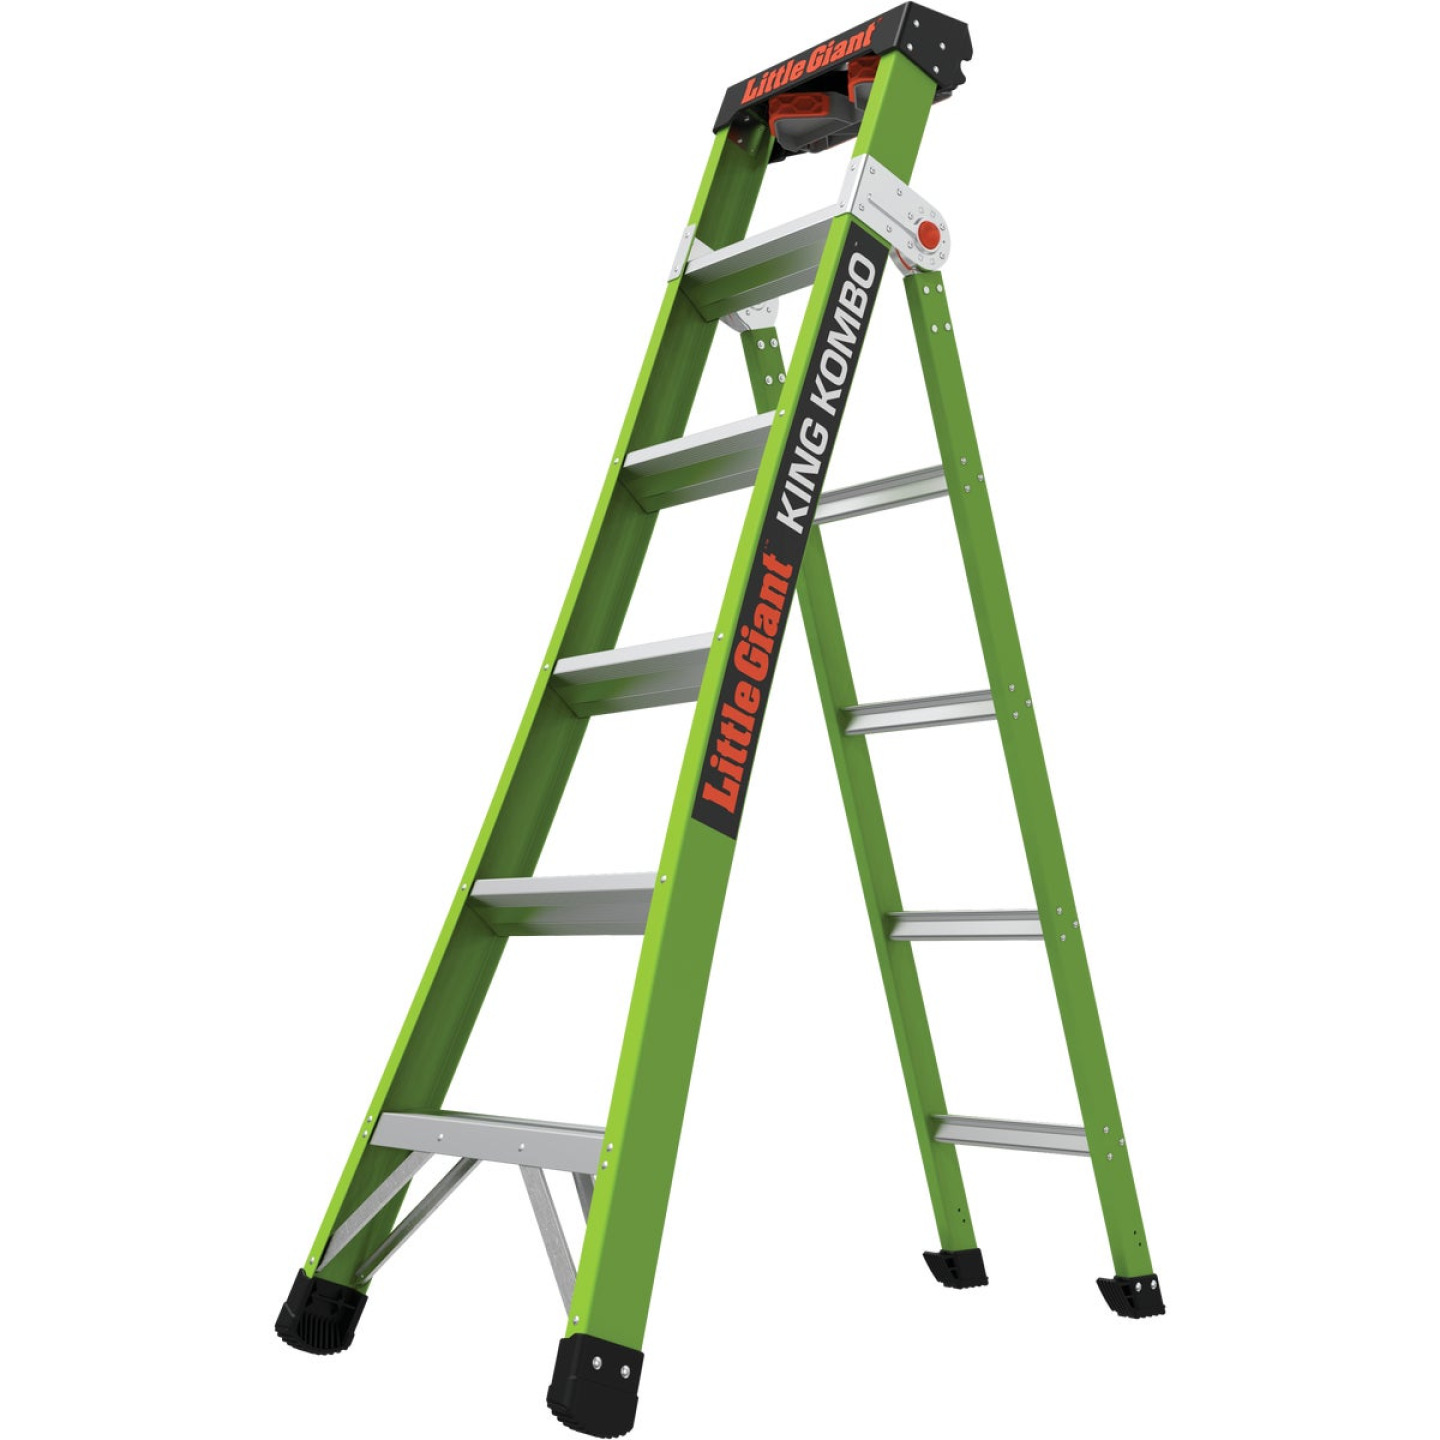 Little Giant King Kombo 6 Ft. To 10 Ft. 3-N-1 All Access Fiberglass Ladder With 375 Lb. Load Capacity Type 1AA Ladder Rating Image 1